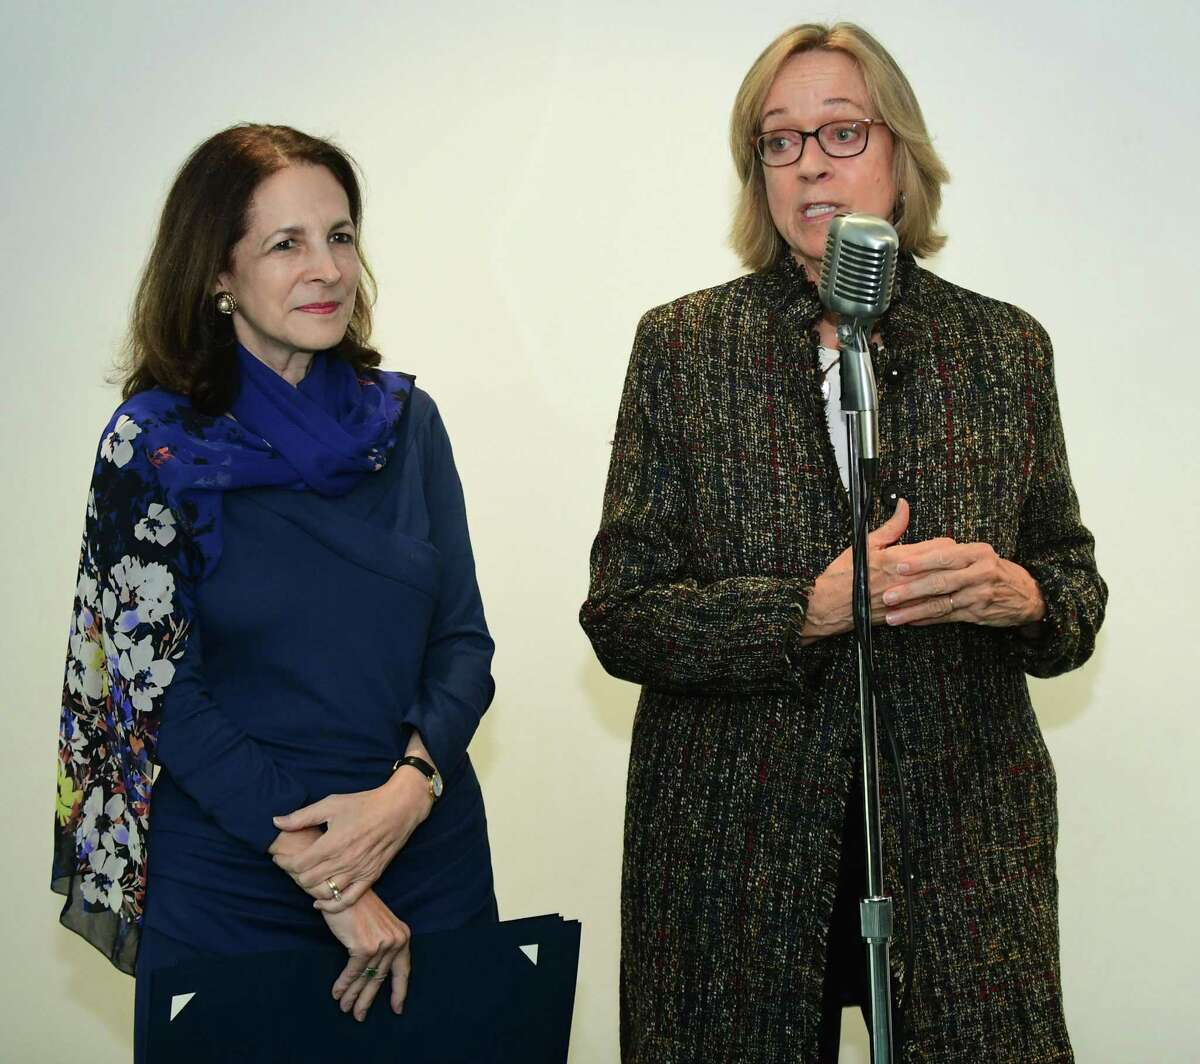 State Representatives Gail Lavielle and Terrie Wood at an awards event in Norwalk in October, 2019.